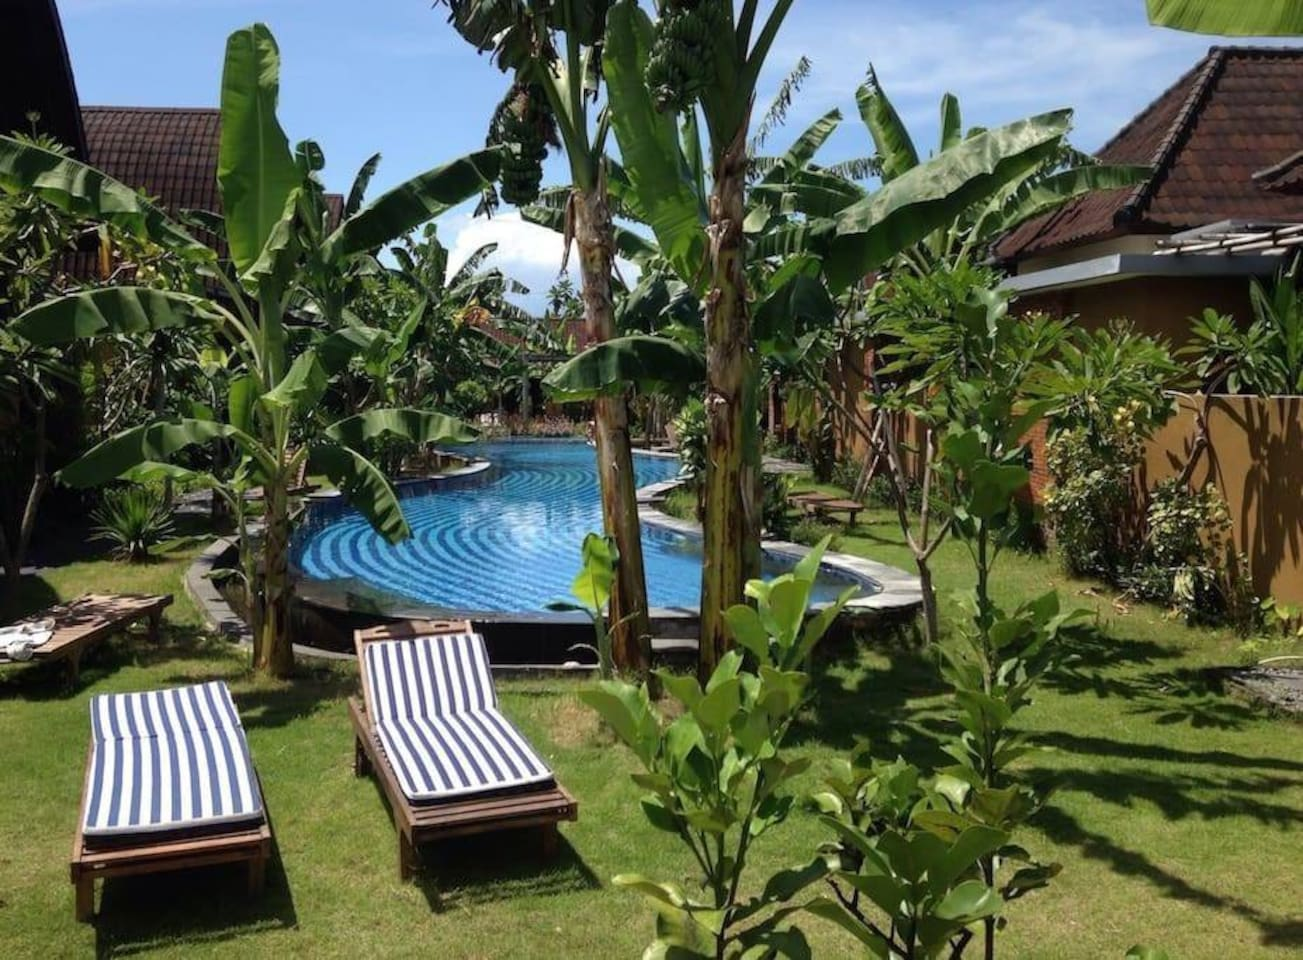 Giant shared pool with relaxing garden area with two joglo's and daybeds